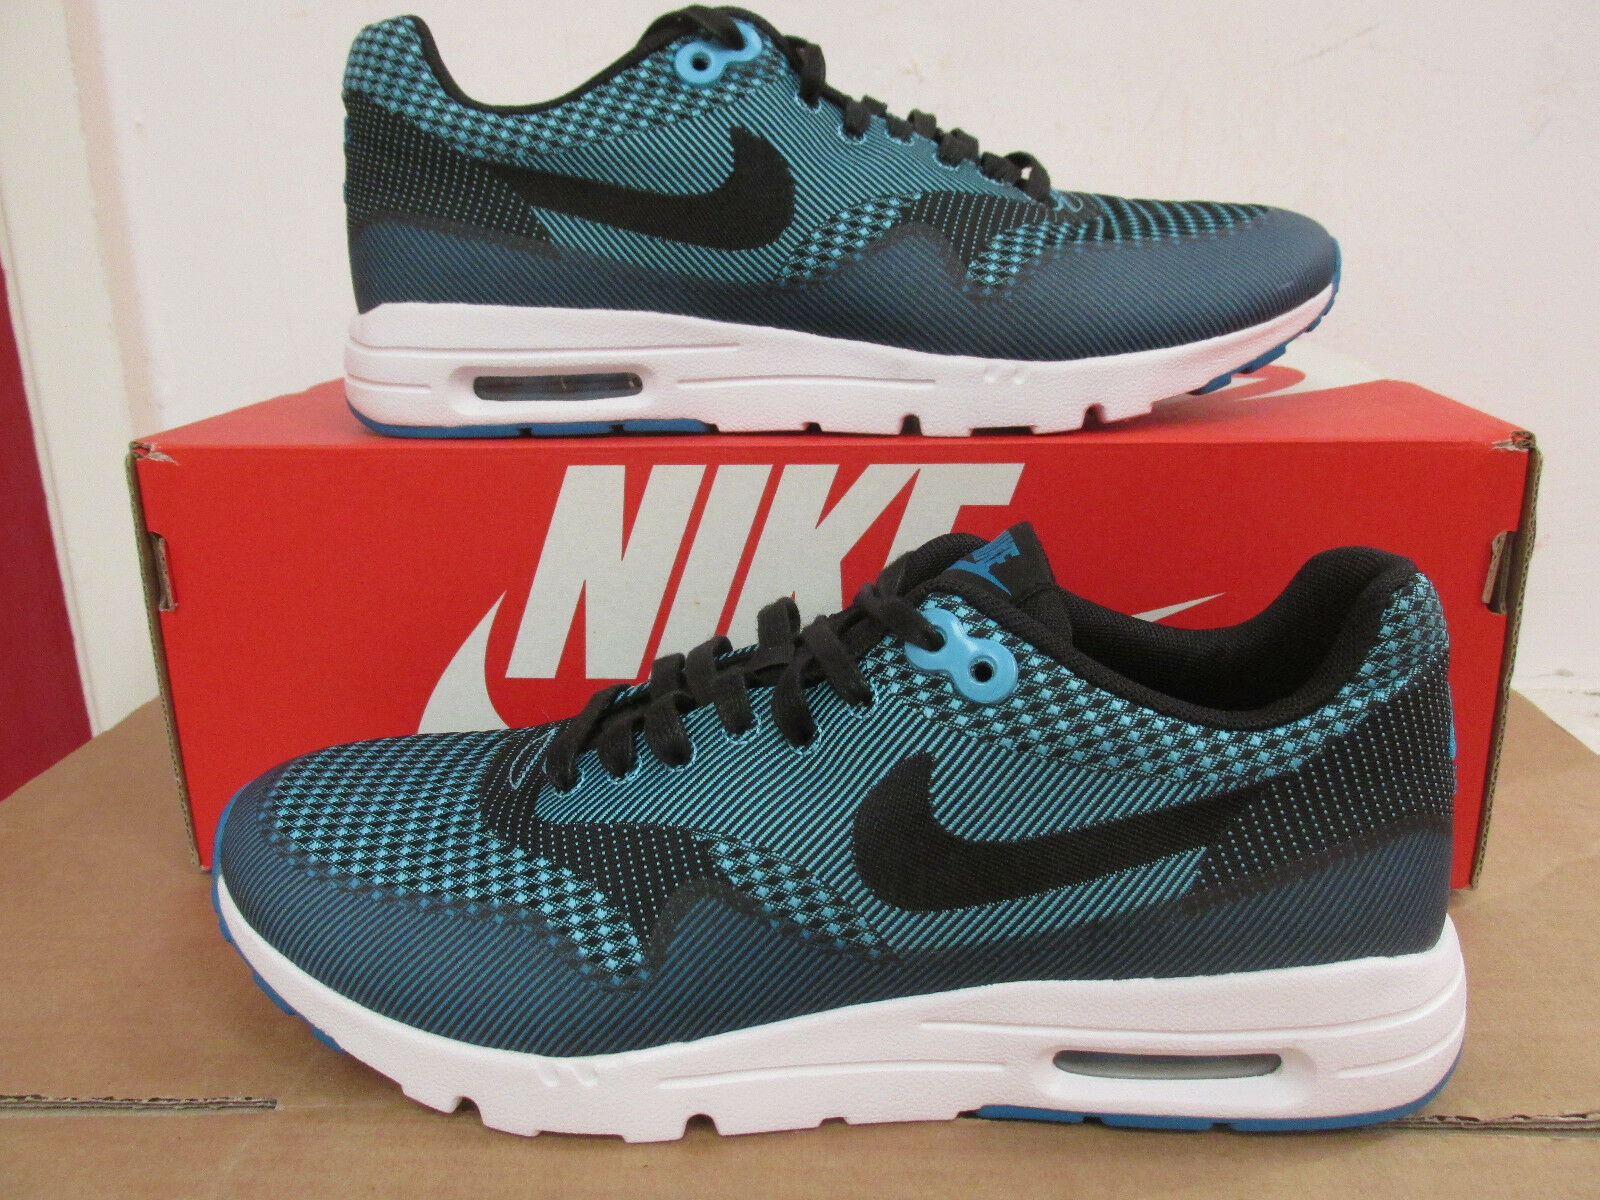 Nike Air Max 1 Ultra JCRD Trainers 704999 400 Sneakers shoes CLEARANCE